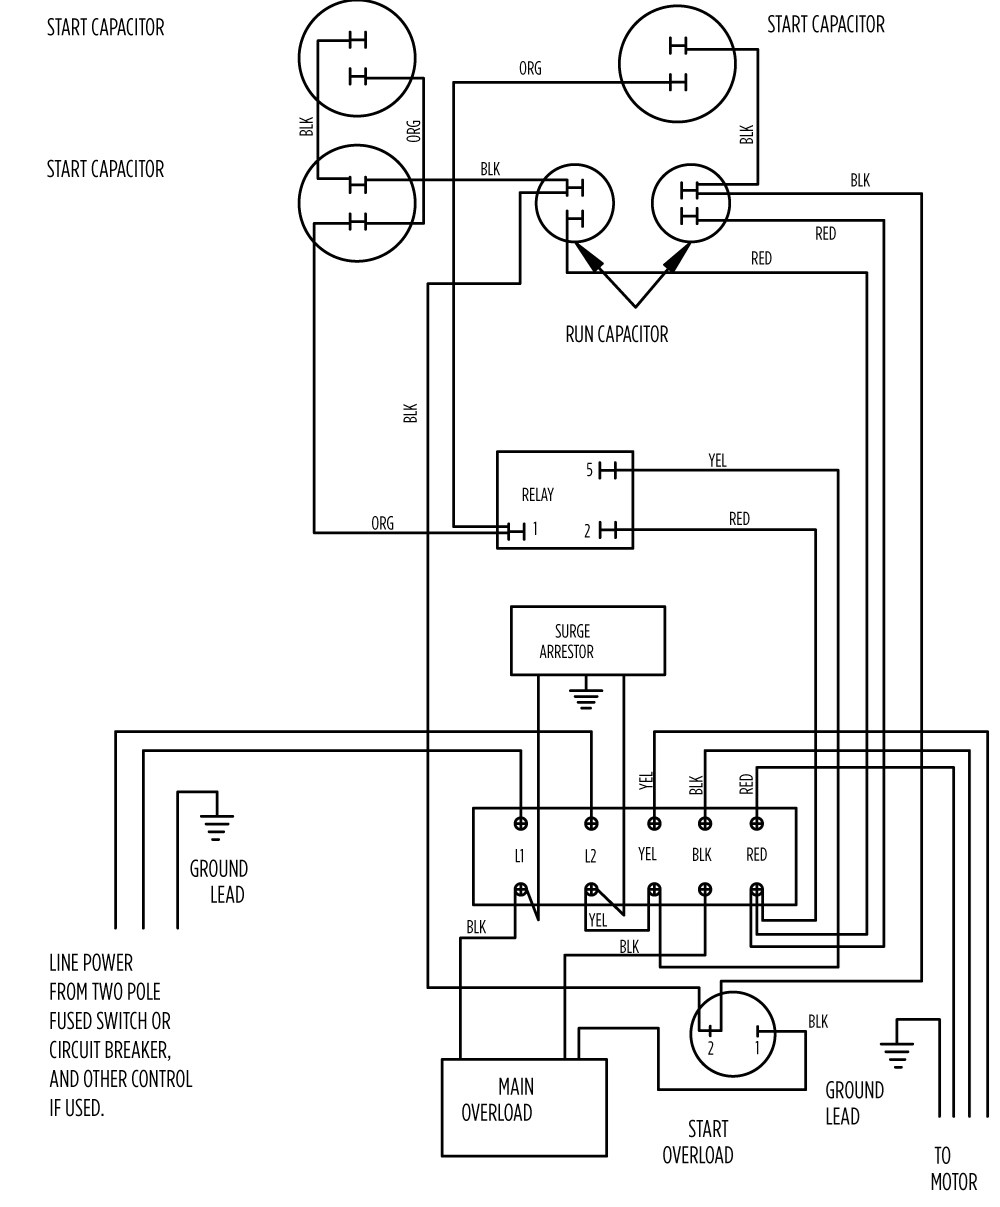 10 hp standard 282 202 9210 or 282 202 9230_aim gallery?format=jpg&quality=80 aim manual page 57 single phase motors and controls motor  at soozxer.org